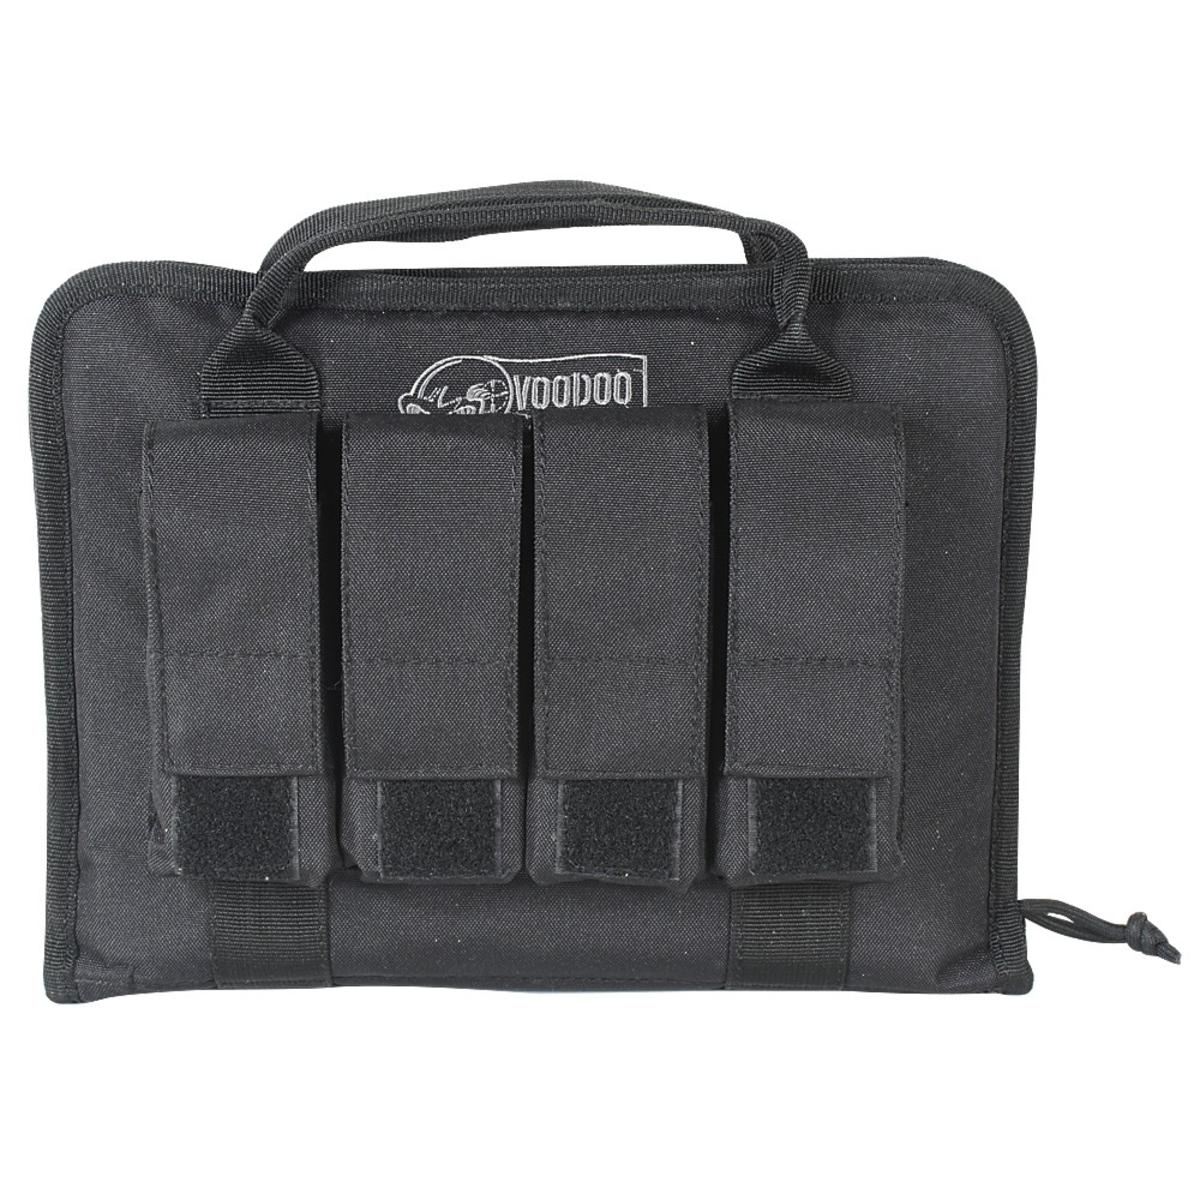 Voodoo Pistol Case With Mag Pouch (Weapon Cases Category)